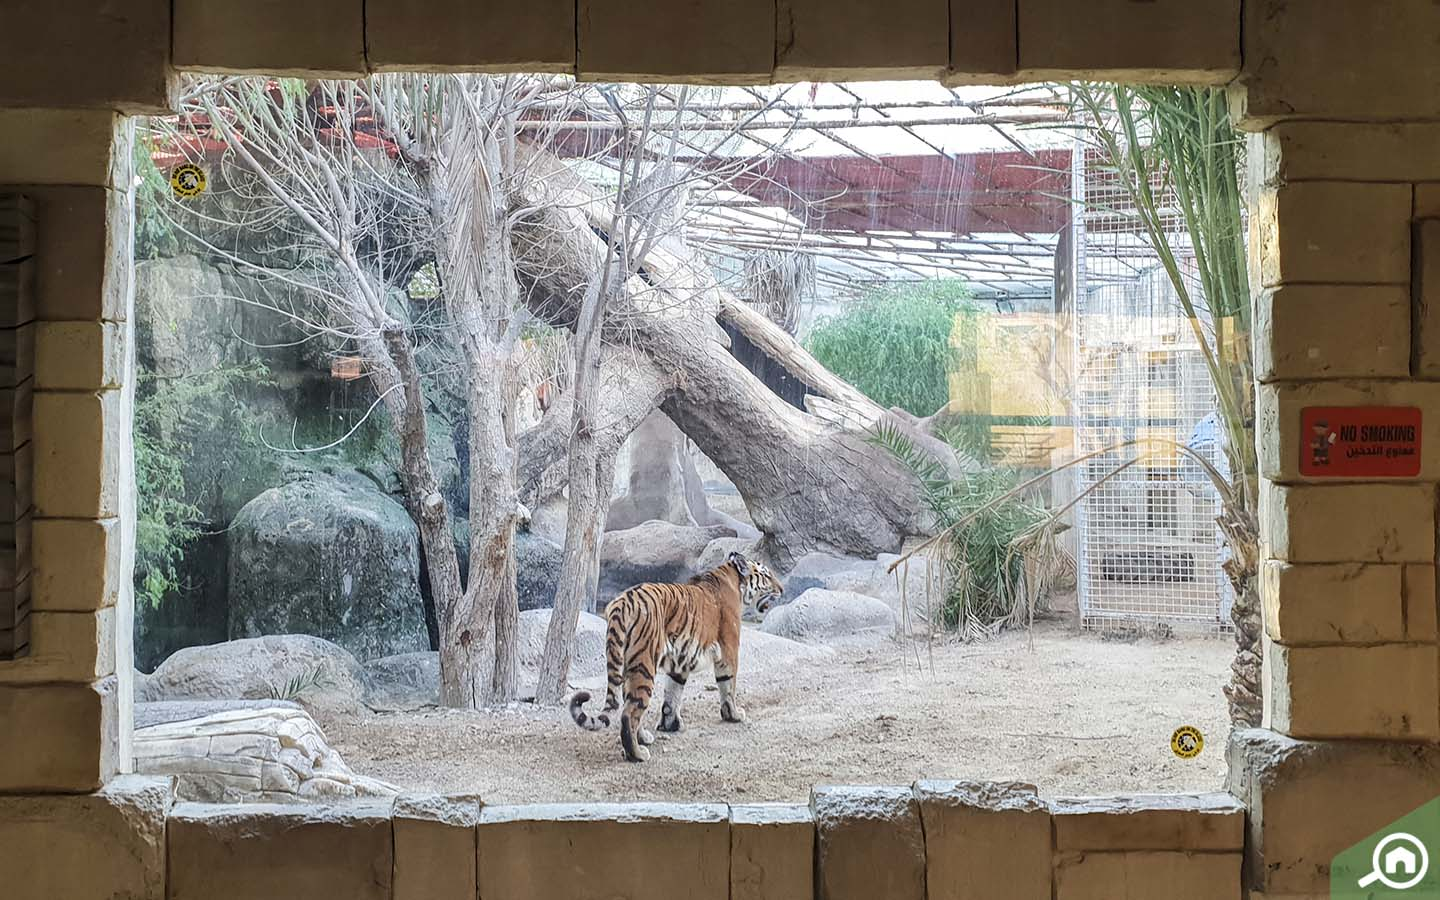 Tiiger at emirates park zoo